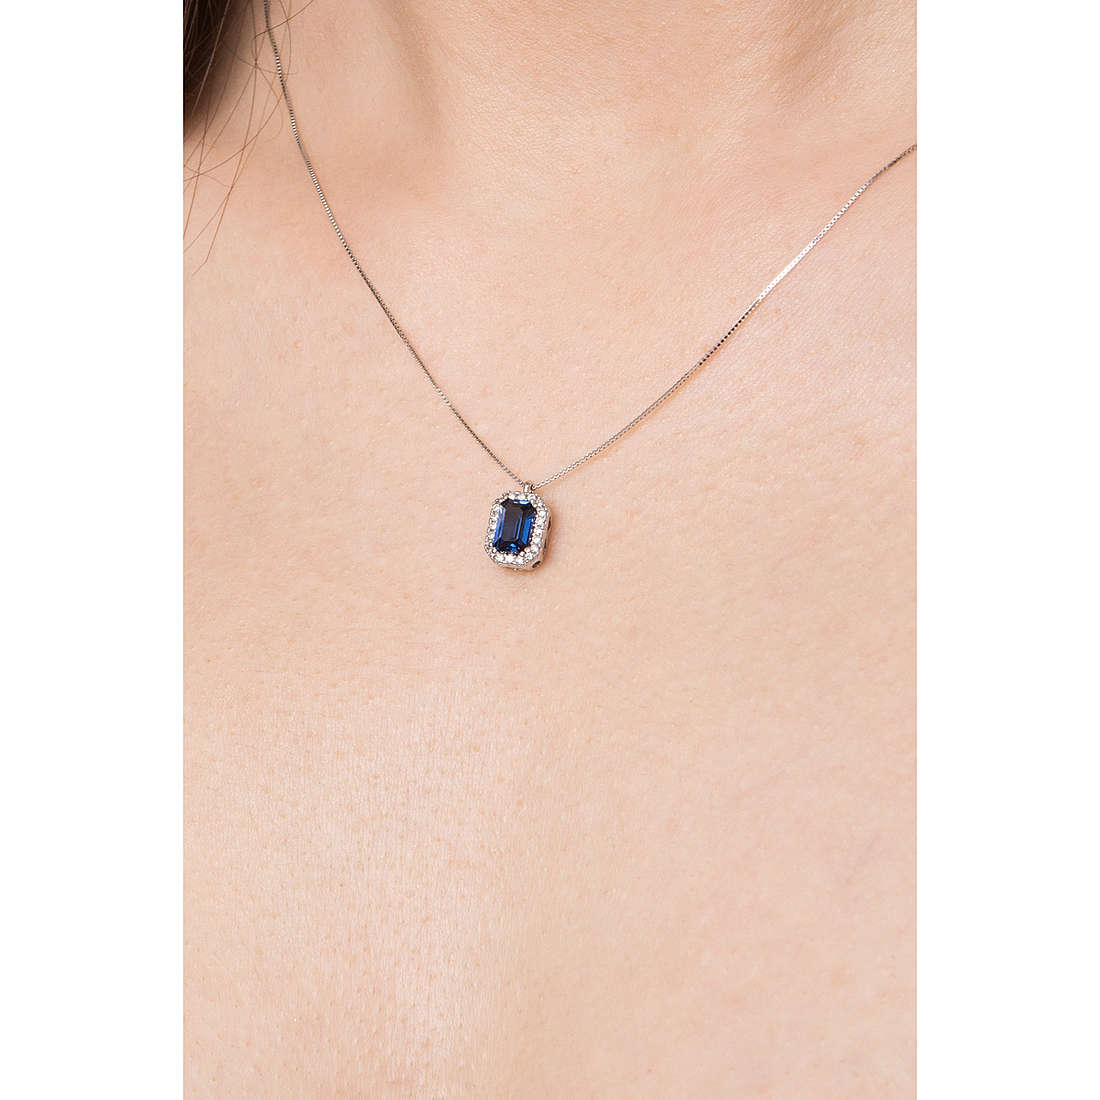 Comete necklaces Classic 07/14 woman GLB 1159 photo wearing